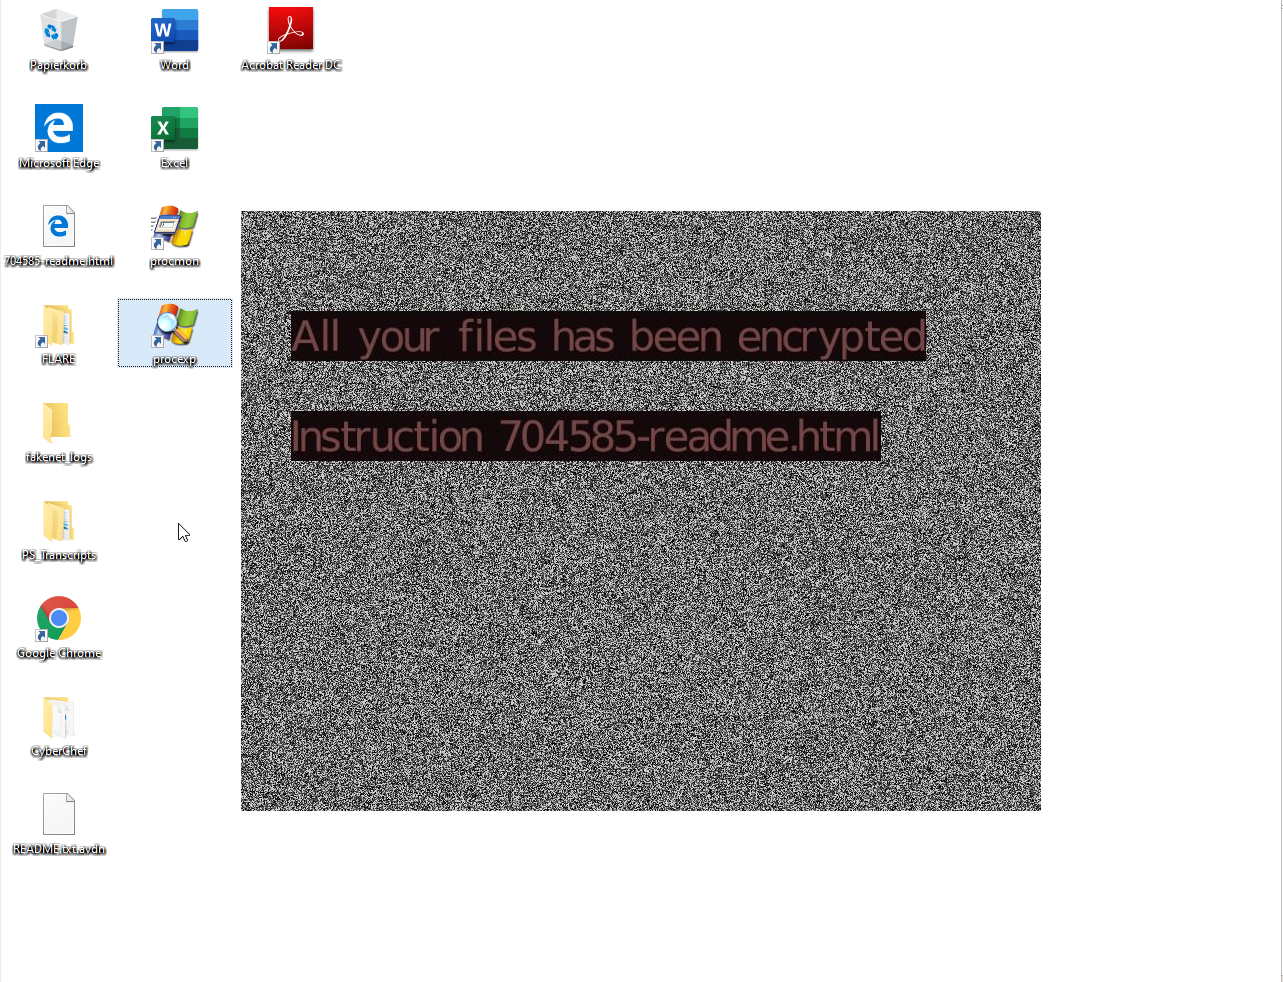 Avaddon ransomware desktop background